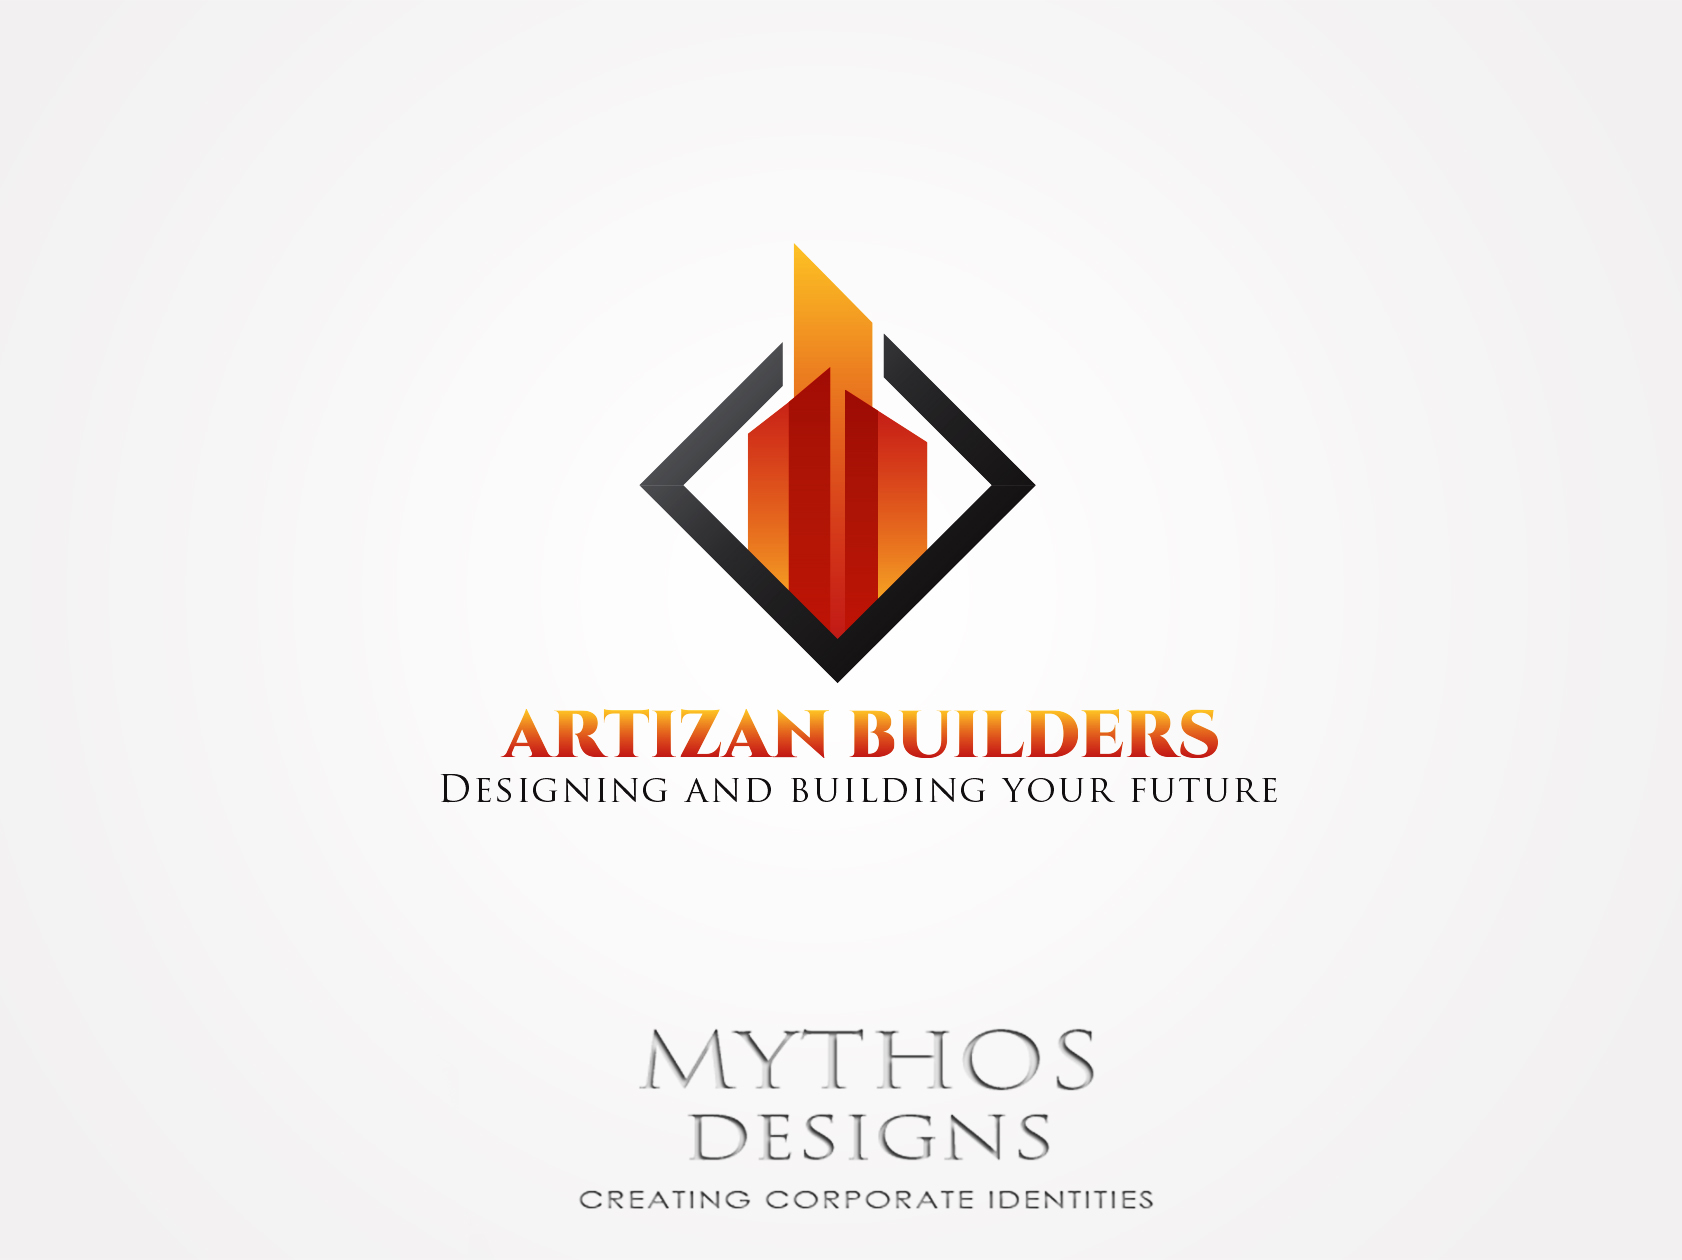 Logo Design by Mythos Designs - Entry No. 164 in the Logo Design Contest Captivating Logo Design for Artisan Builders.